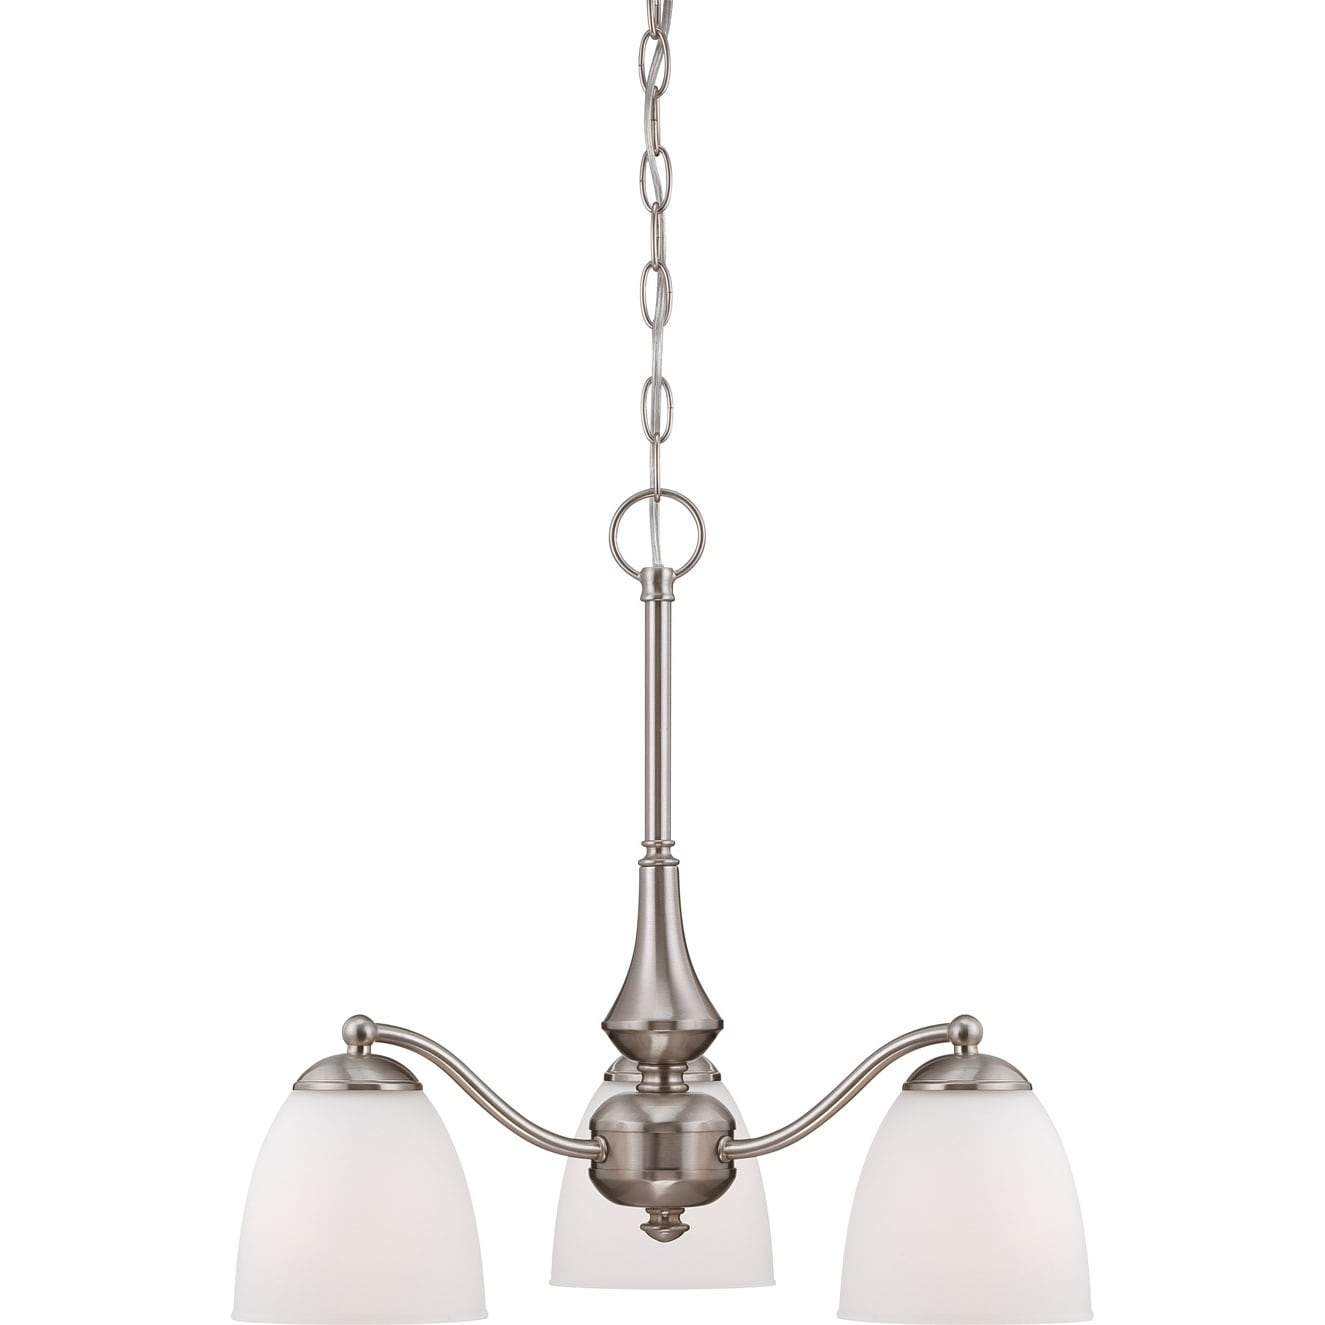 Nuvo Patton 3-light Brushed Nickel Fluorescent Chandelier